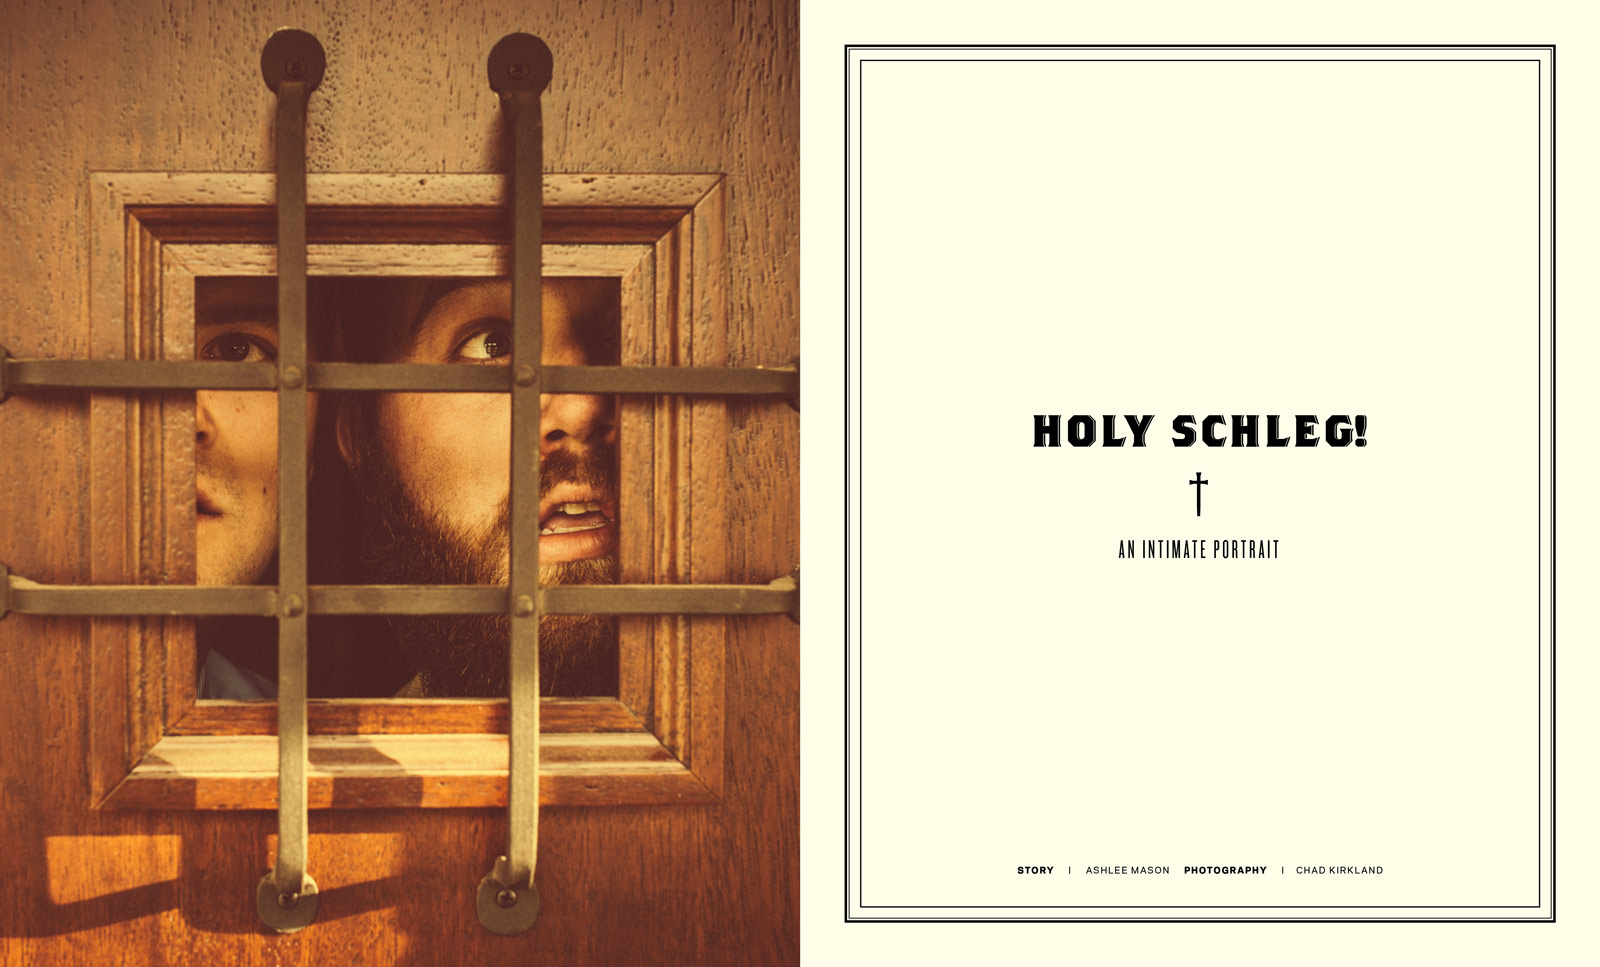 Holy Schleg editorial for Revolv Magazine - Salt Lake City Utah